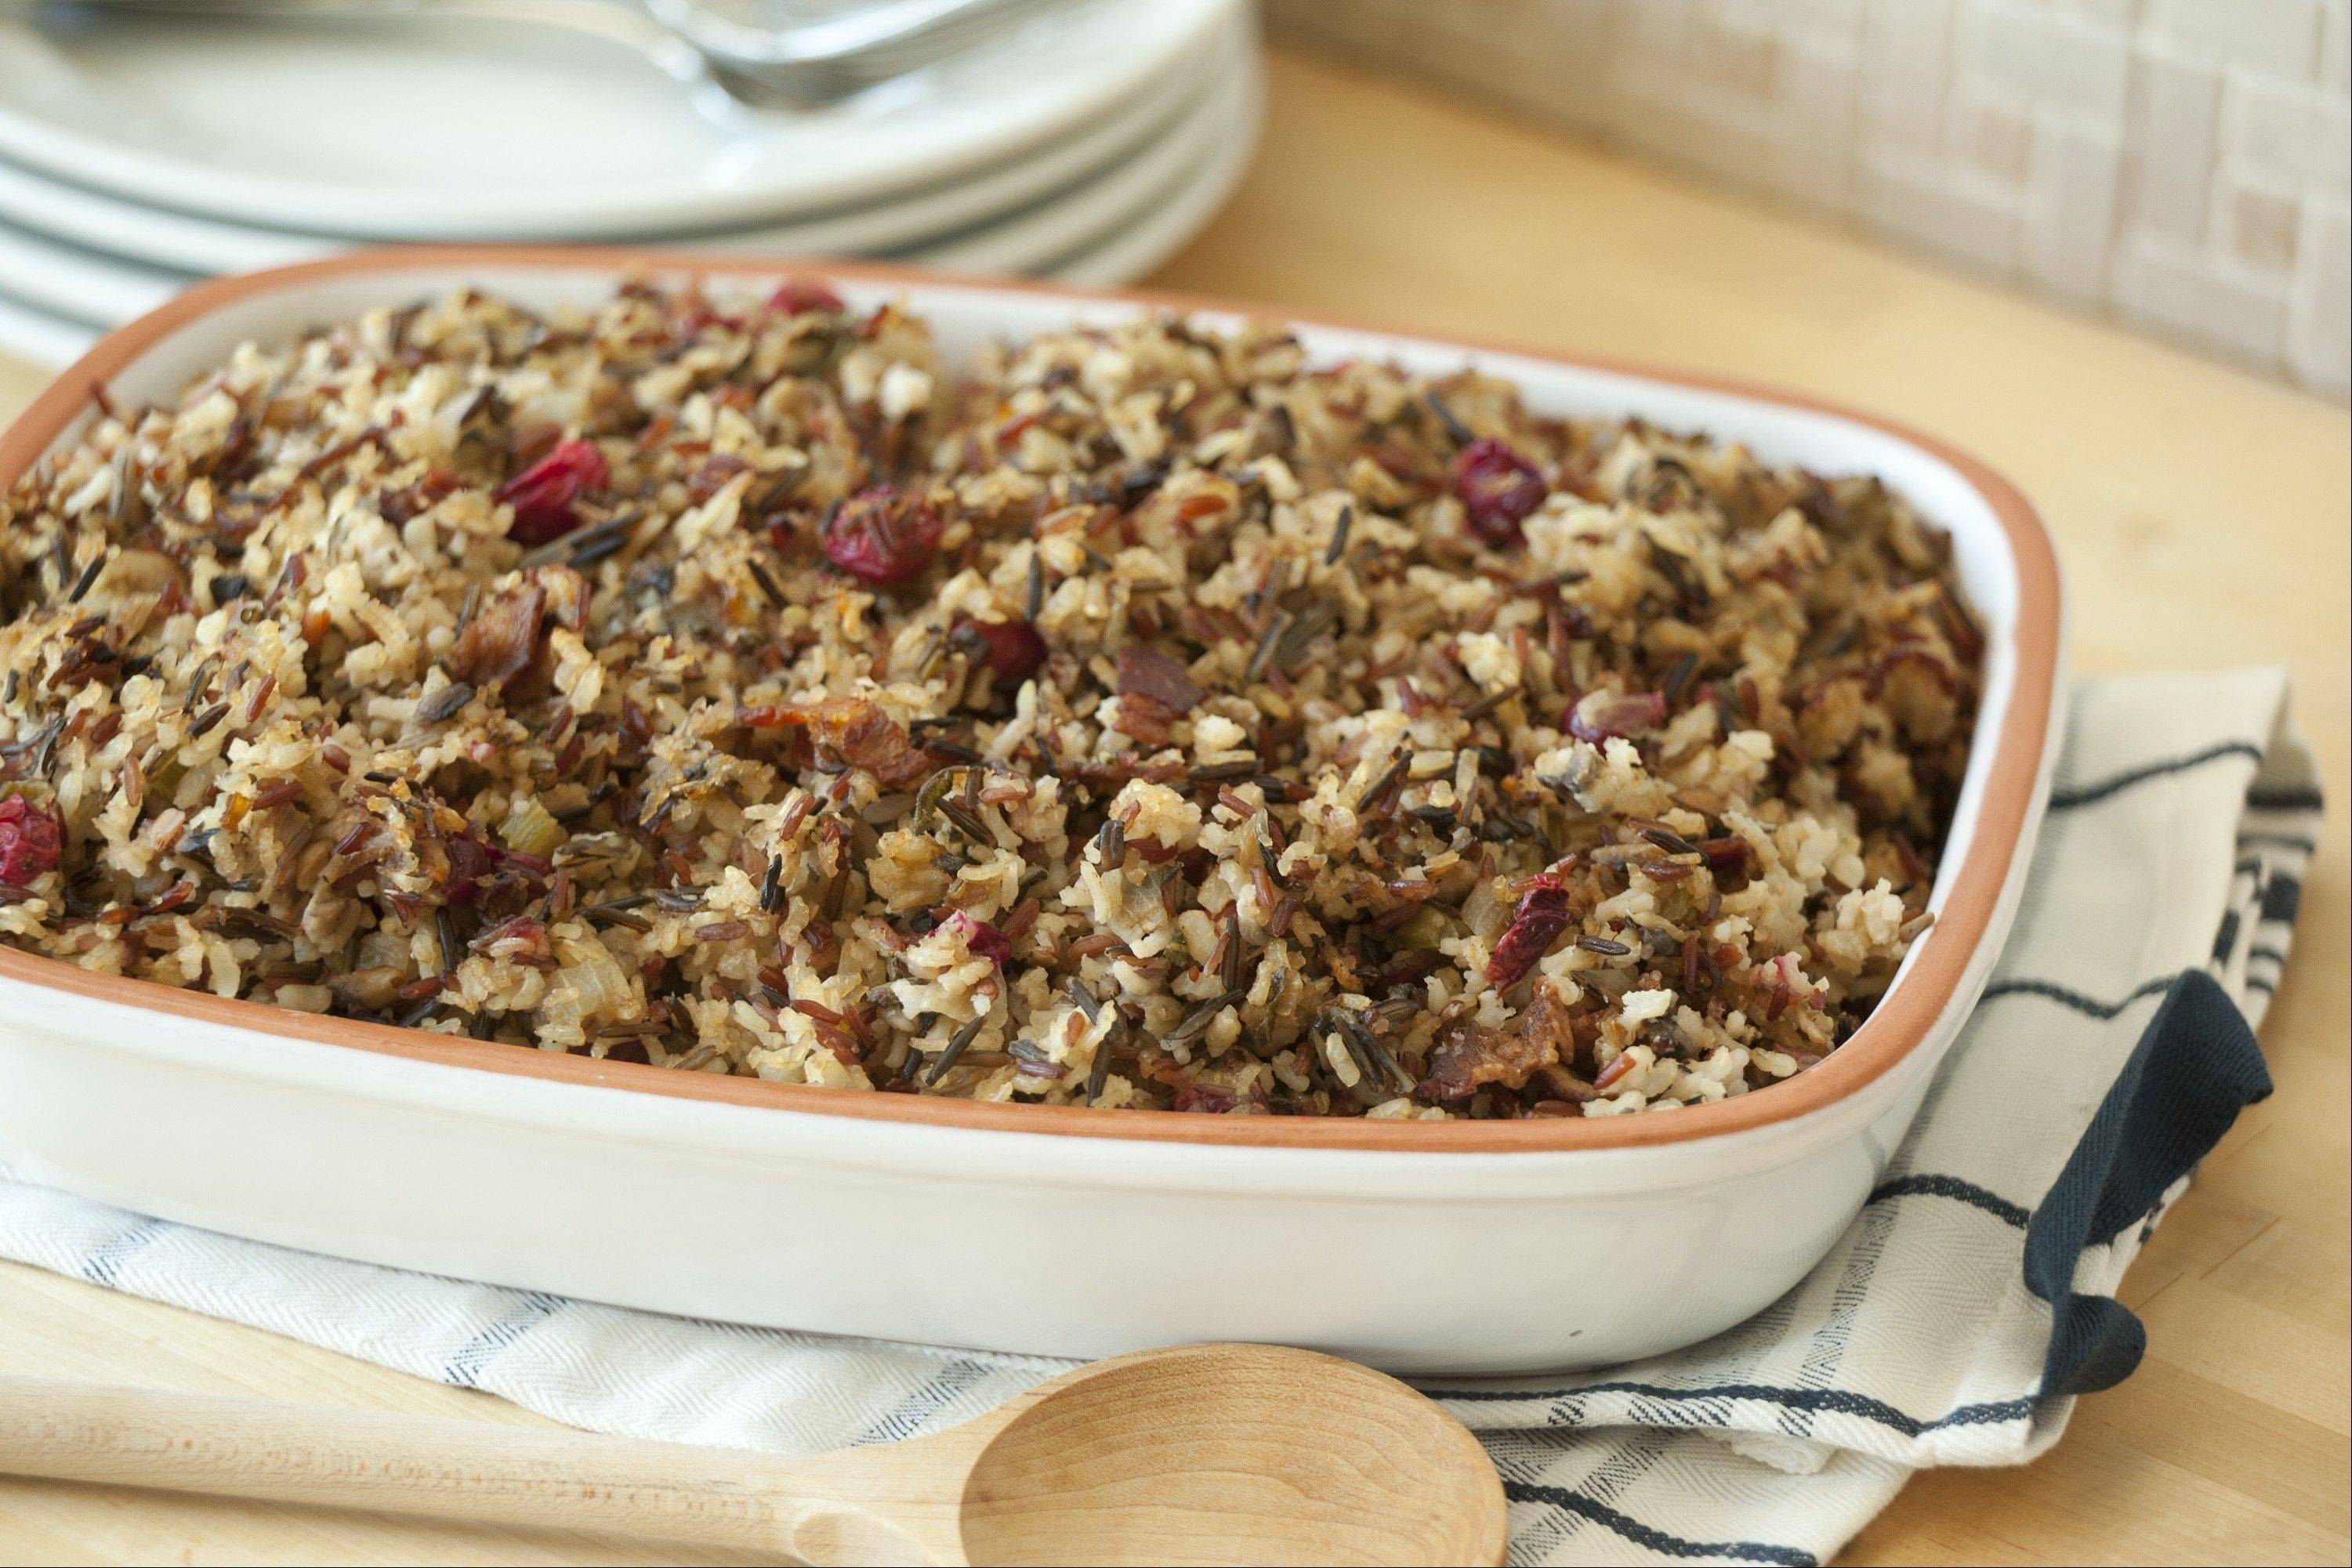 Grains mix up traditional ideas of stuffing